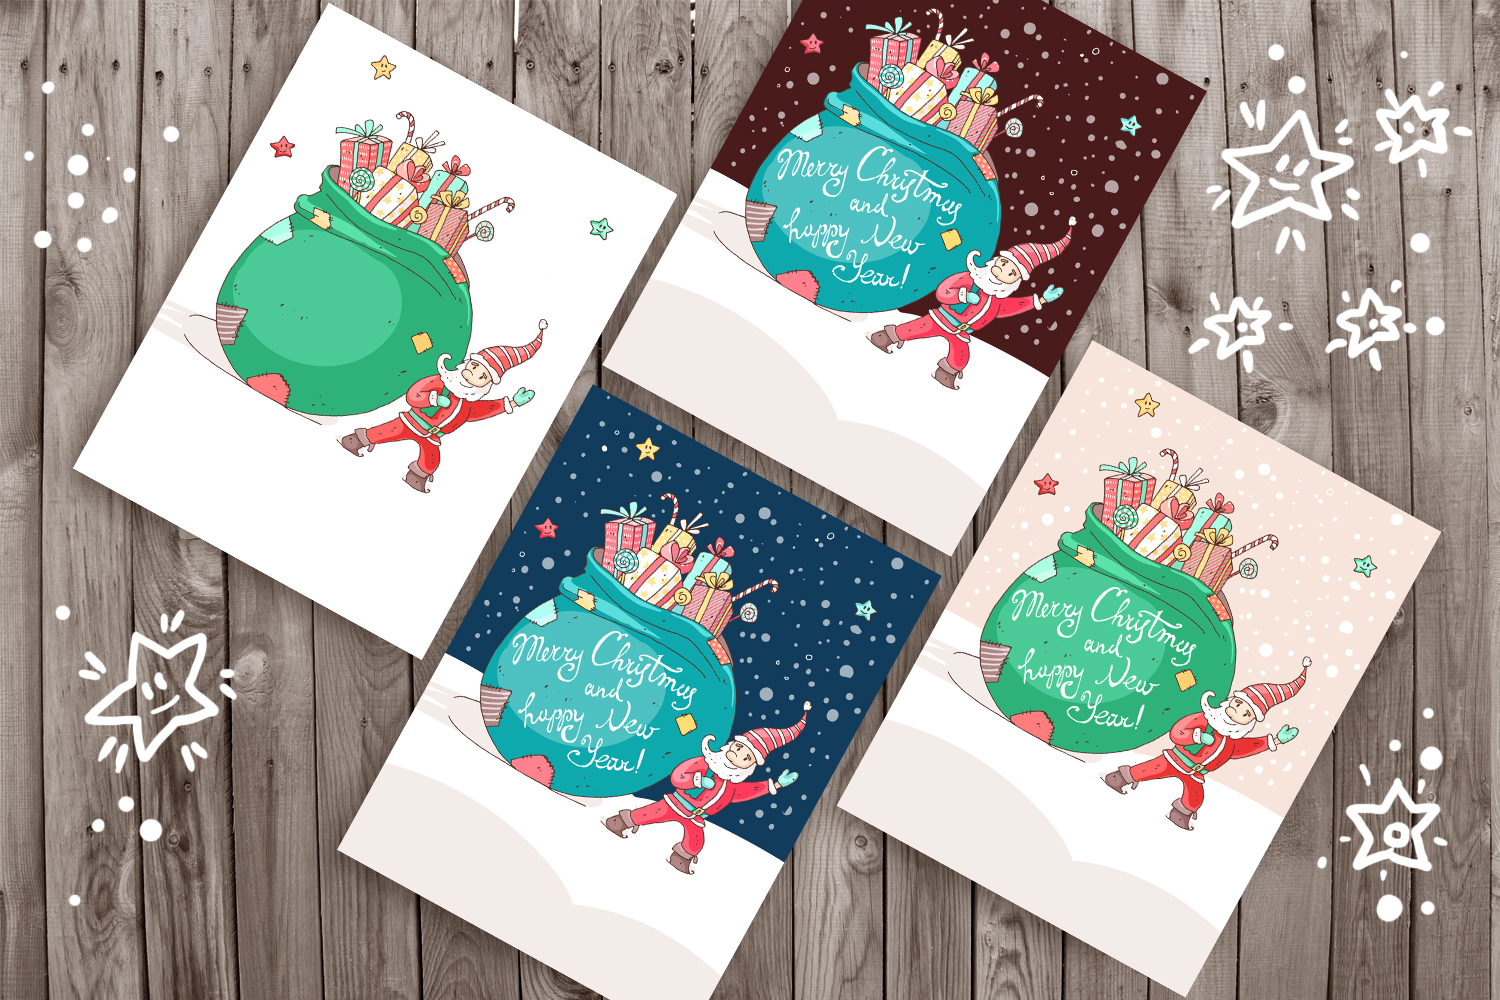 Winter Greeting Cards example image 4